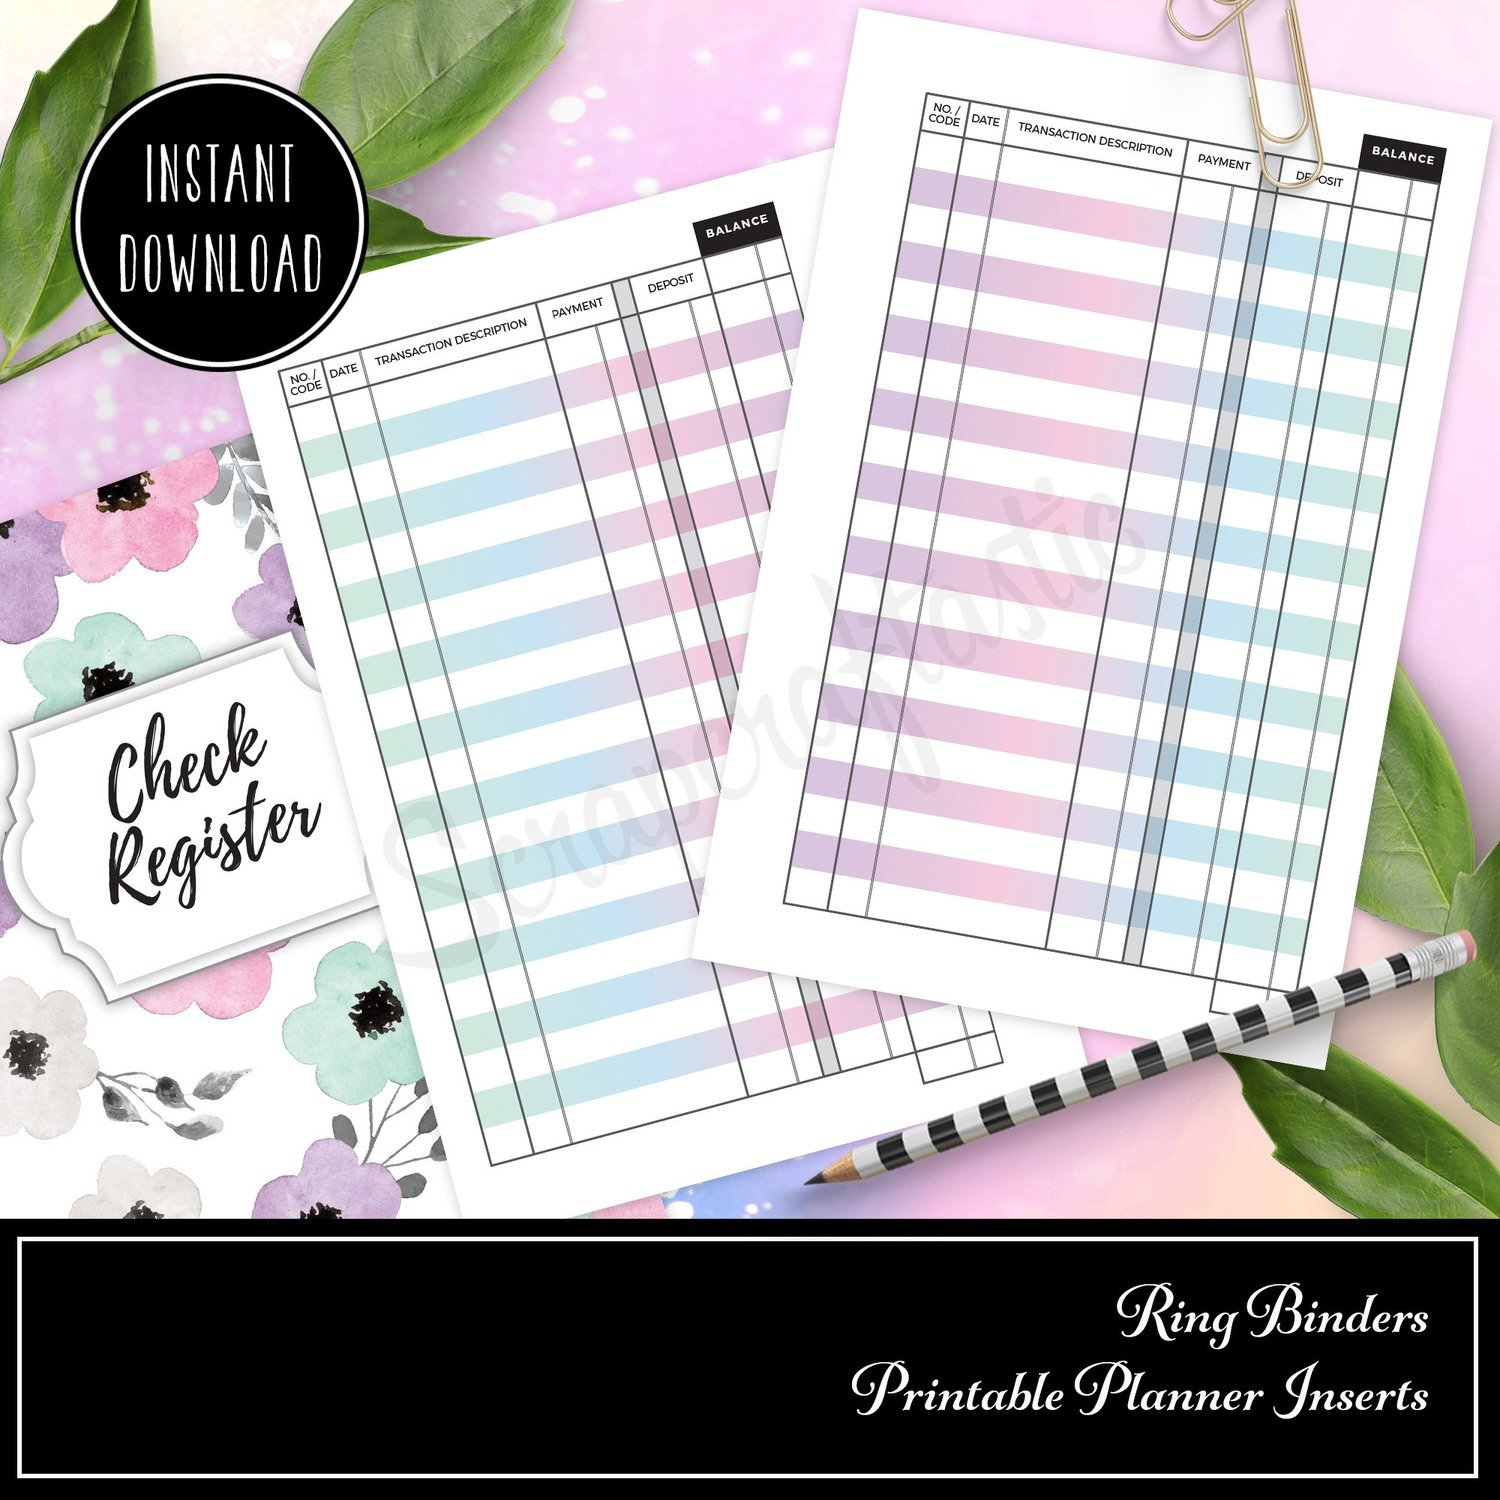 PERSONAL RINGS - Check Register Binder Rings Printable Insert